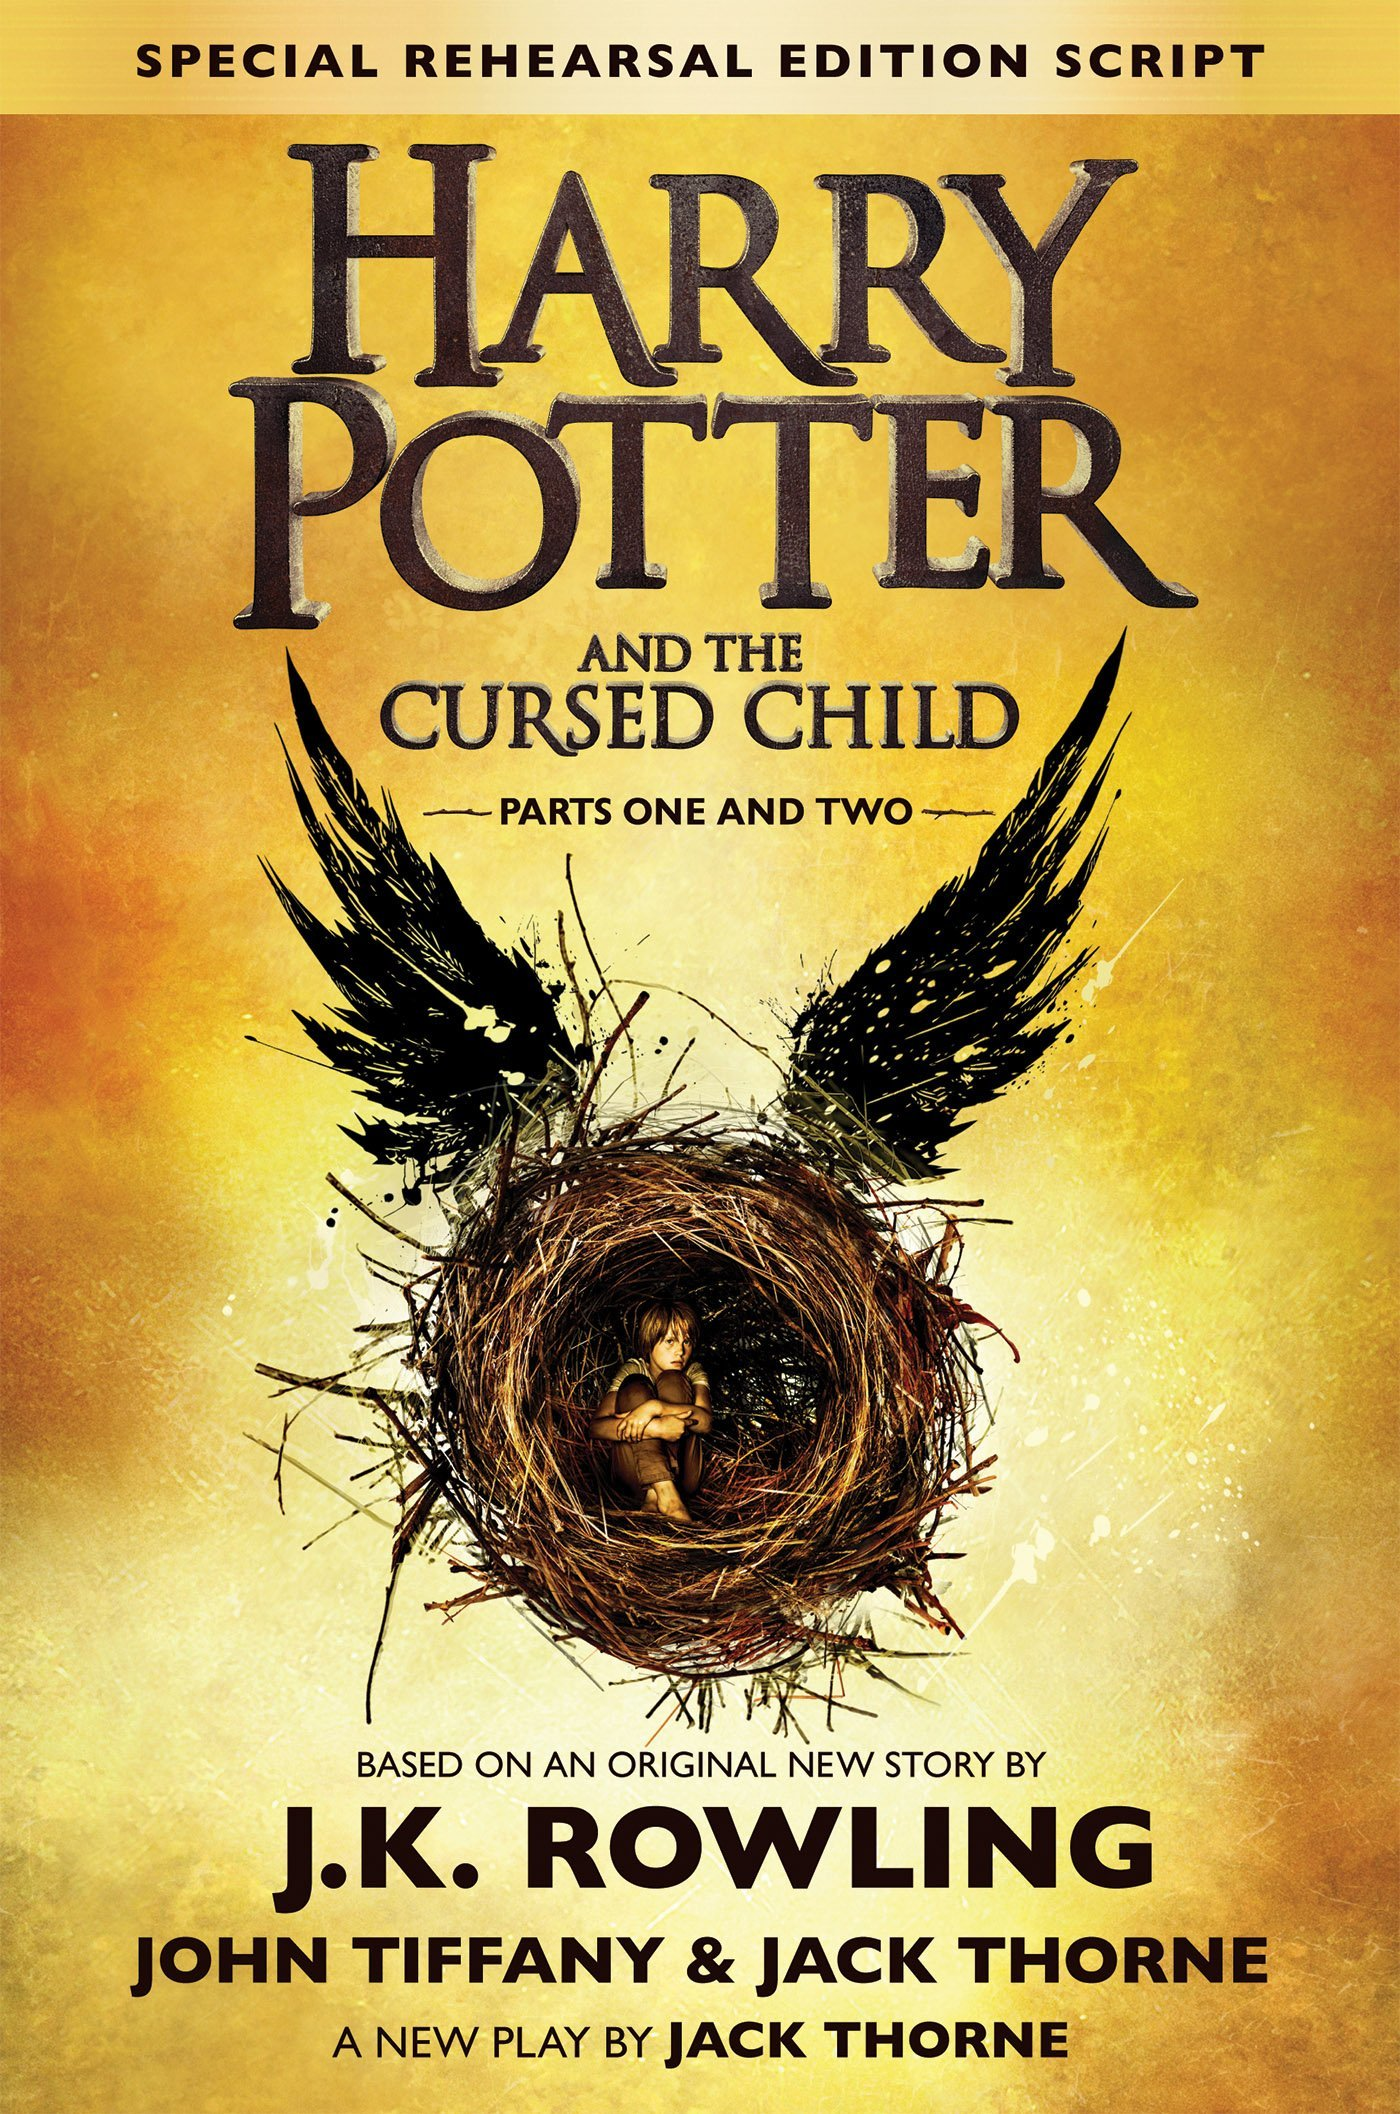 Harry Potter Book Wiki : Harry potter and the cursed child wiki